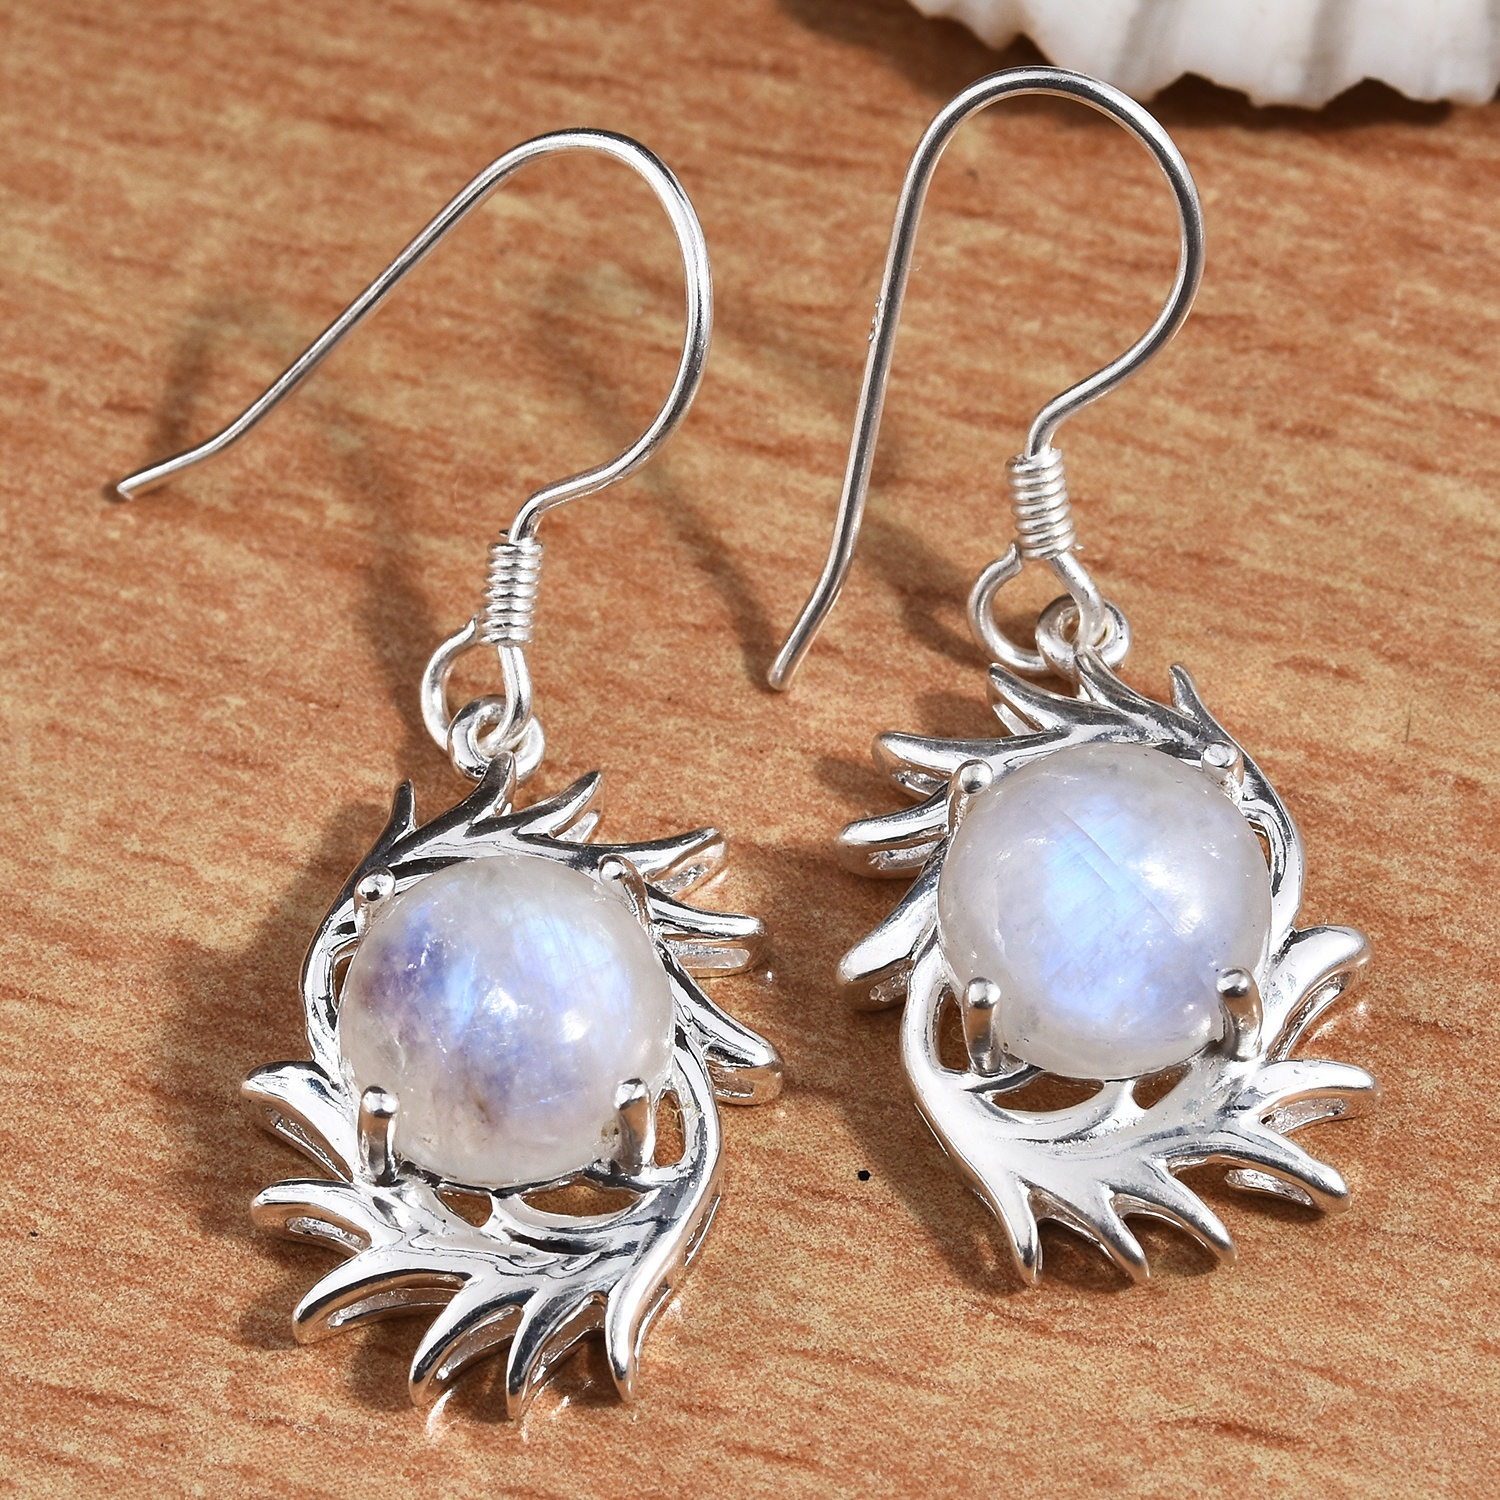 Moonstone earrings displayed on wooden board.